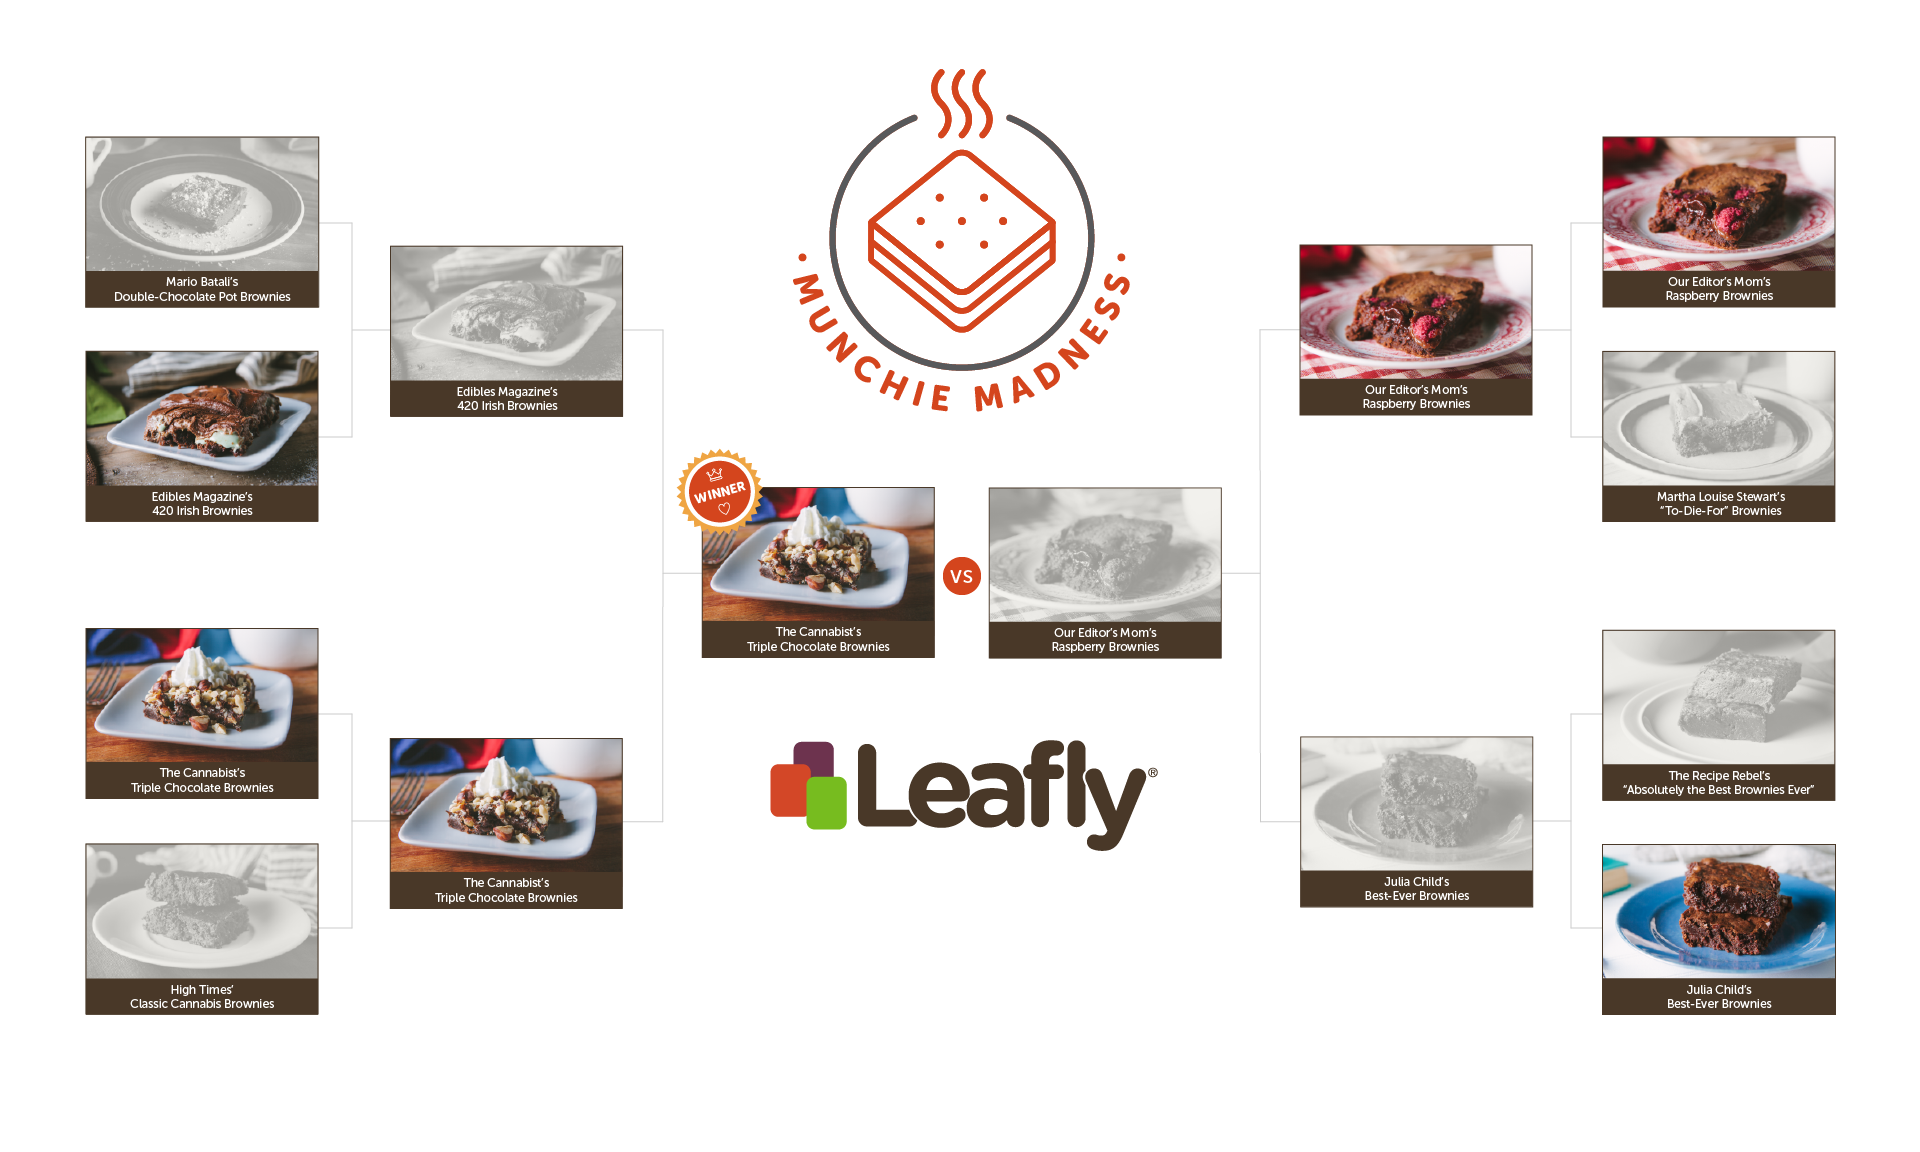 Leafly's Munchie Madness Weed Brownie Tournament Bracket